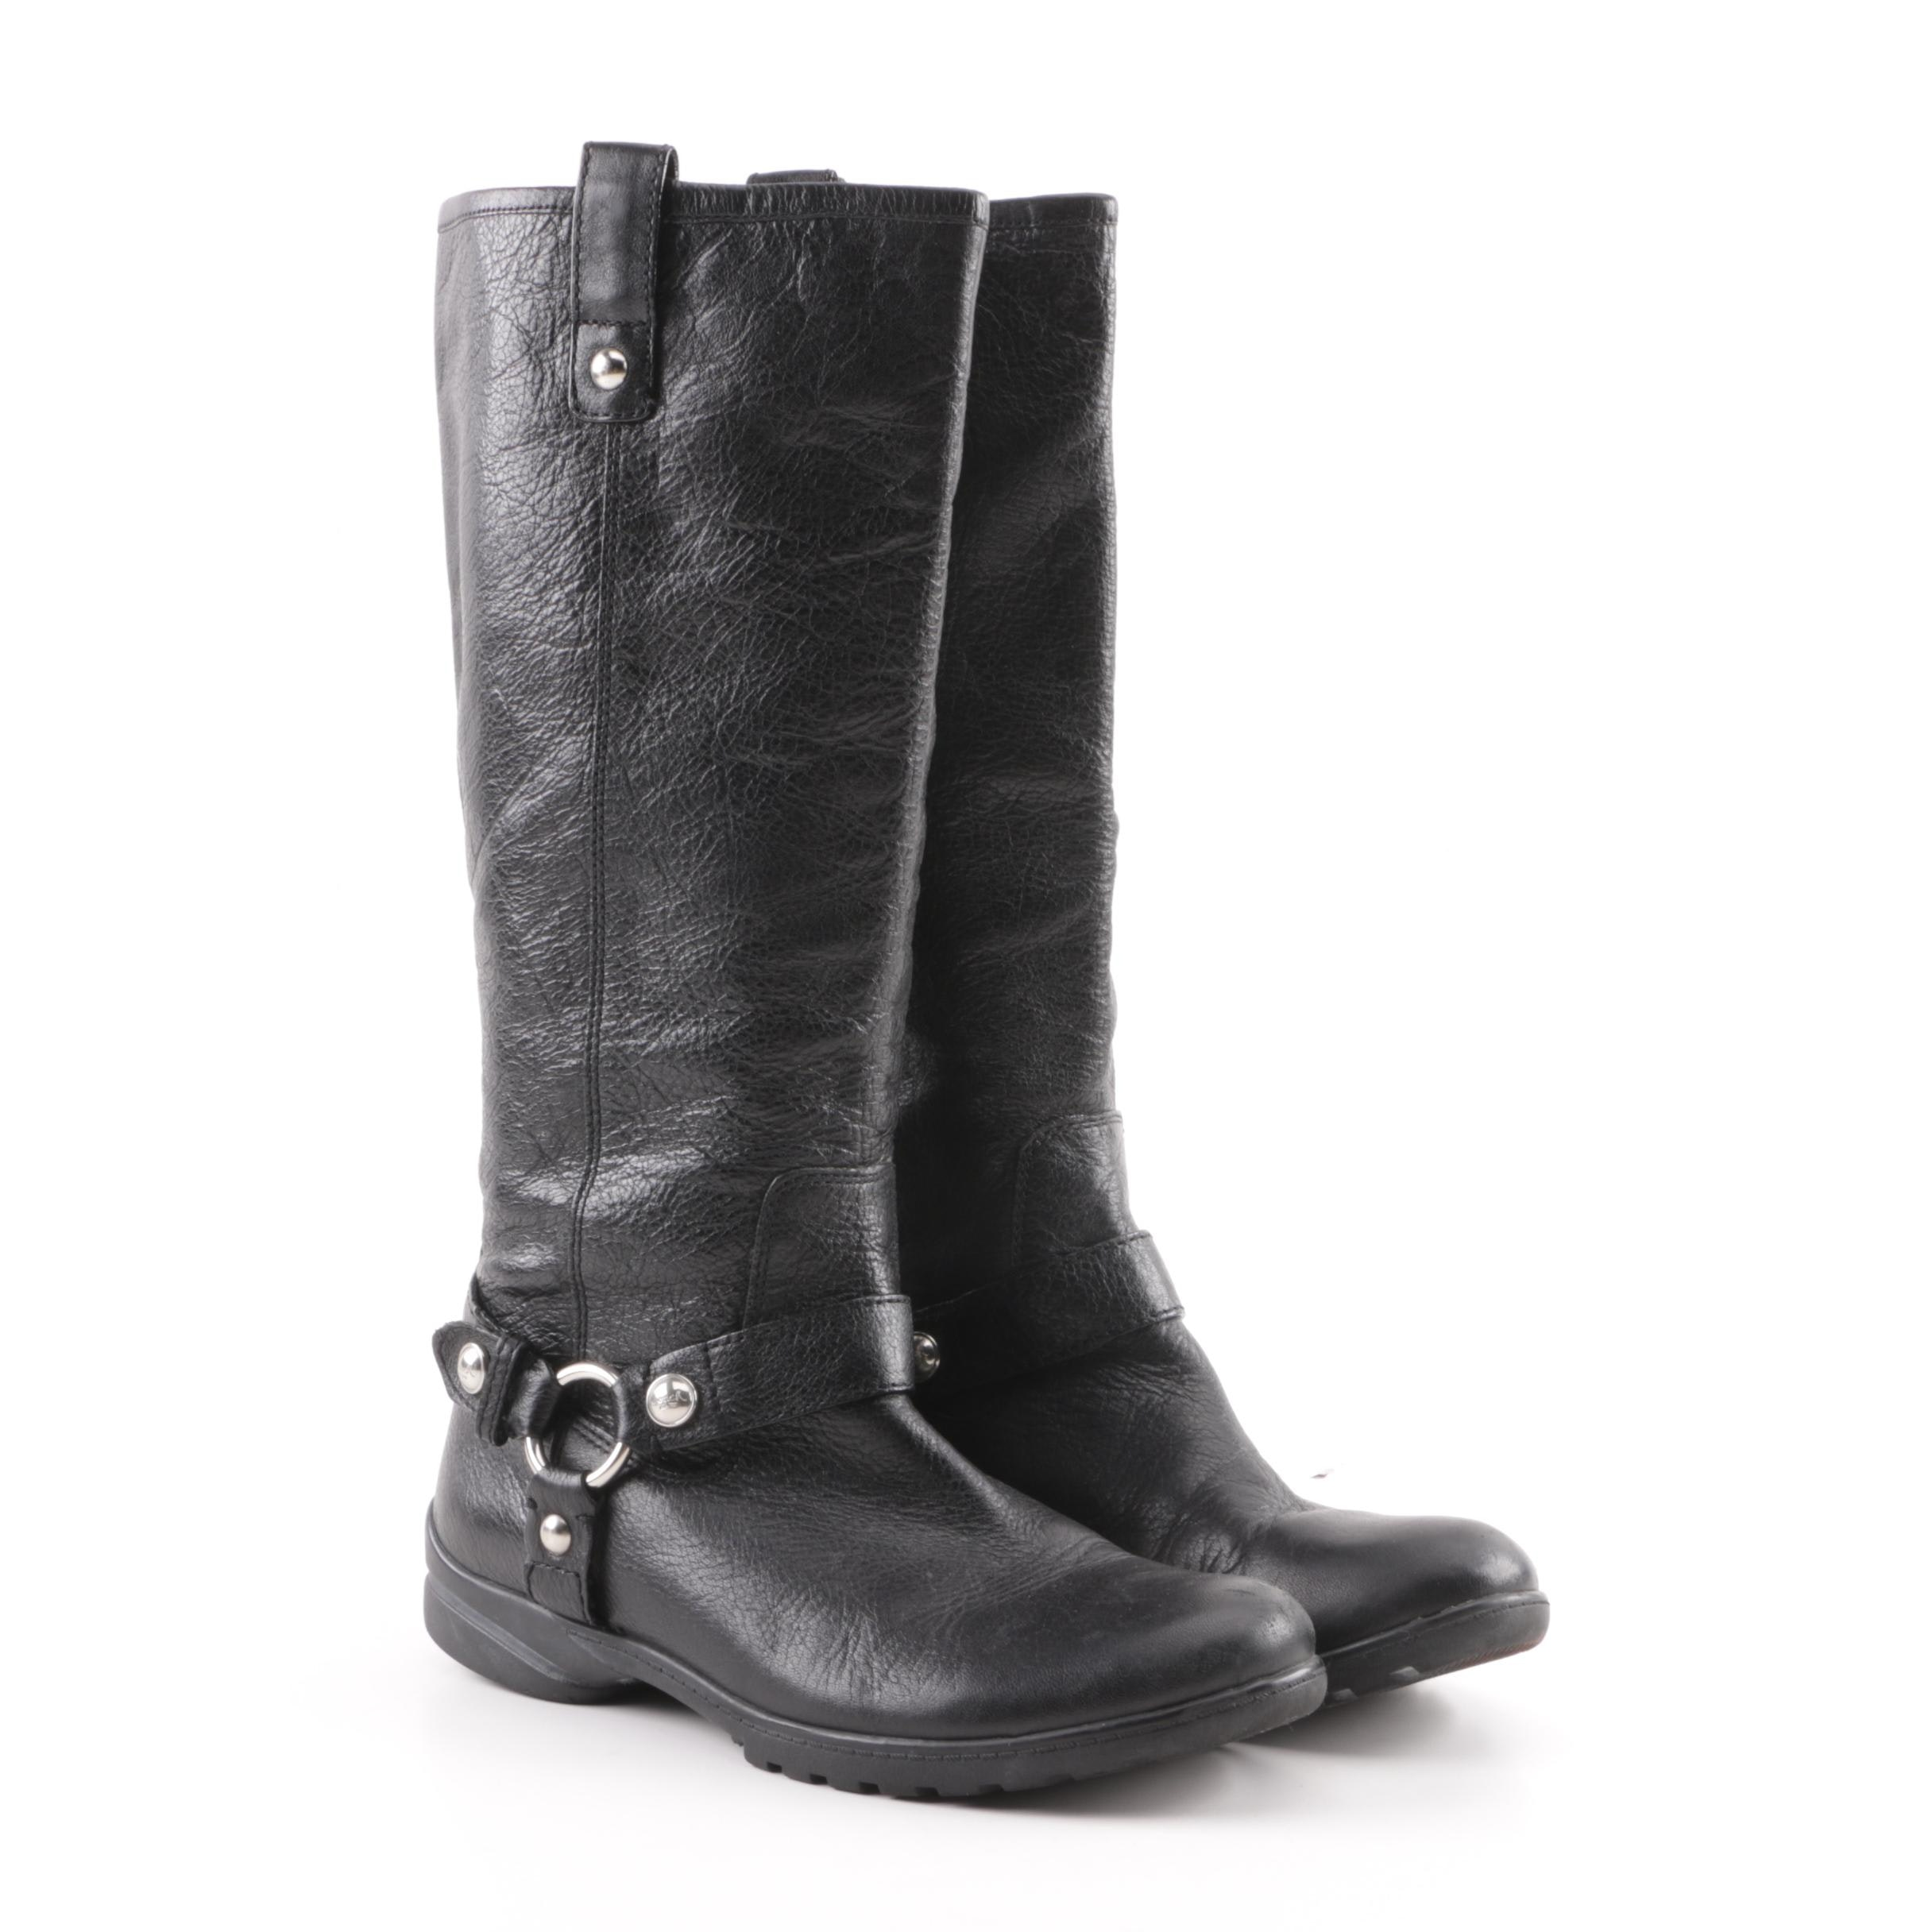 Women's Coach Dafney Black Leather Motorcycle Style Boots